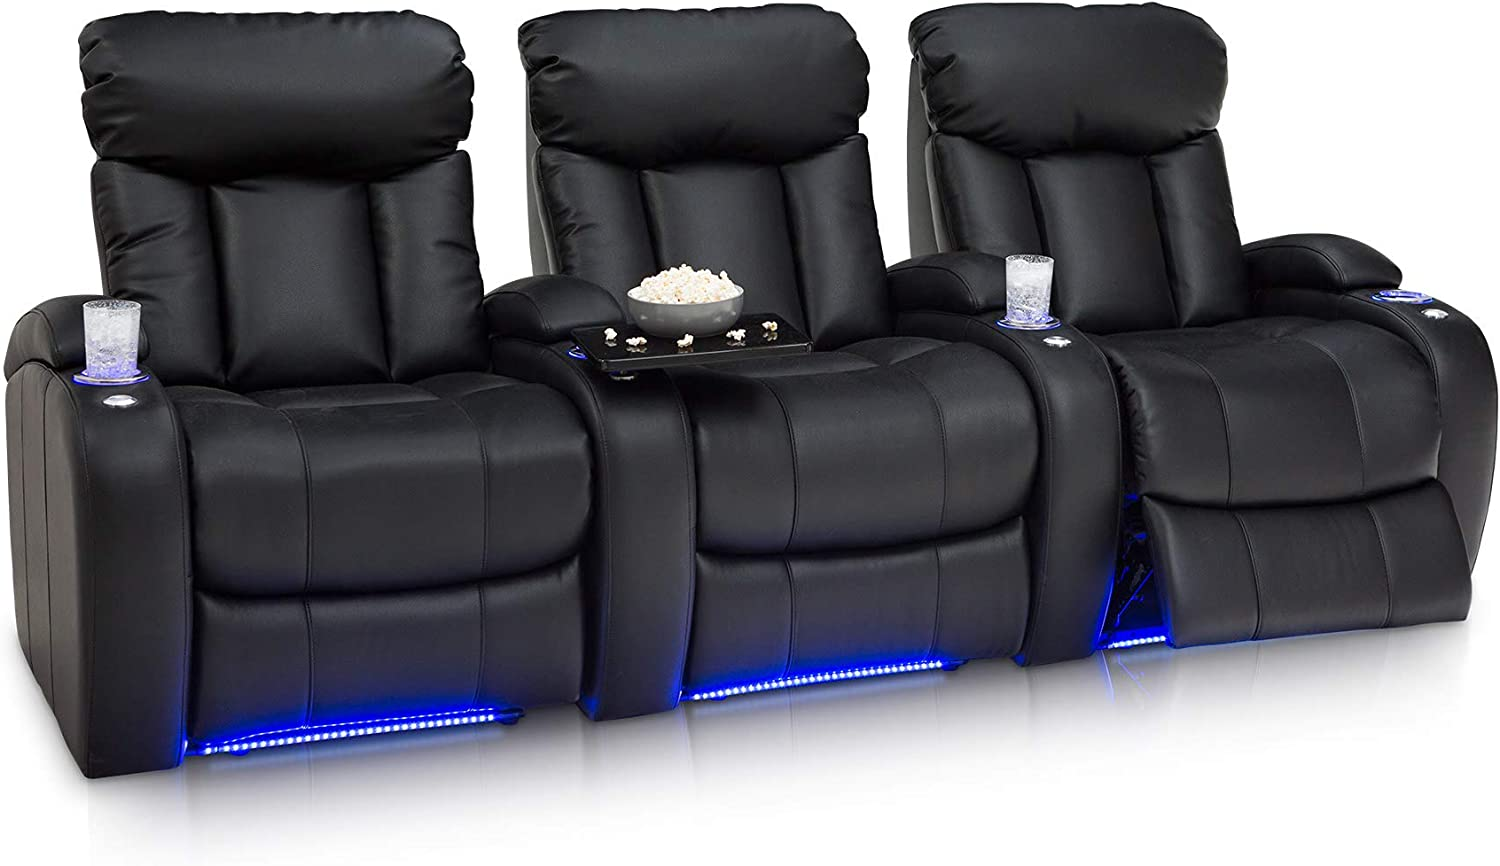 Seatcraft Orleans Home Theater Seating Manual Recline Leather Gel Row of 3, Black